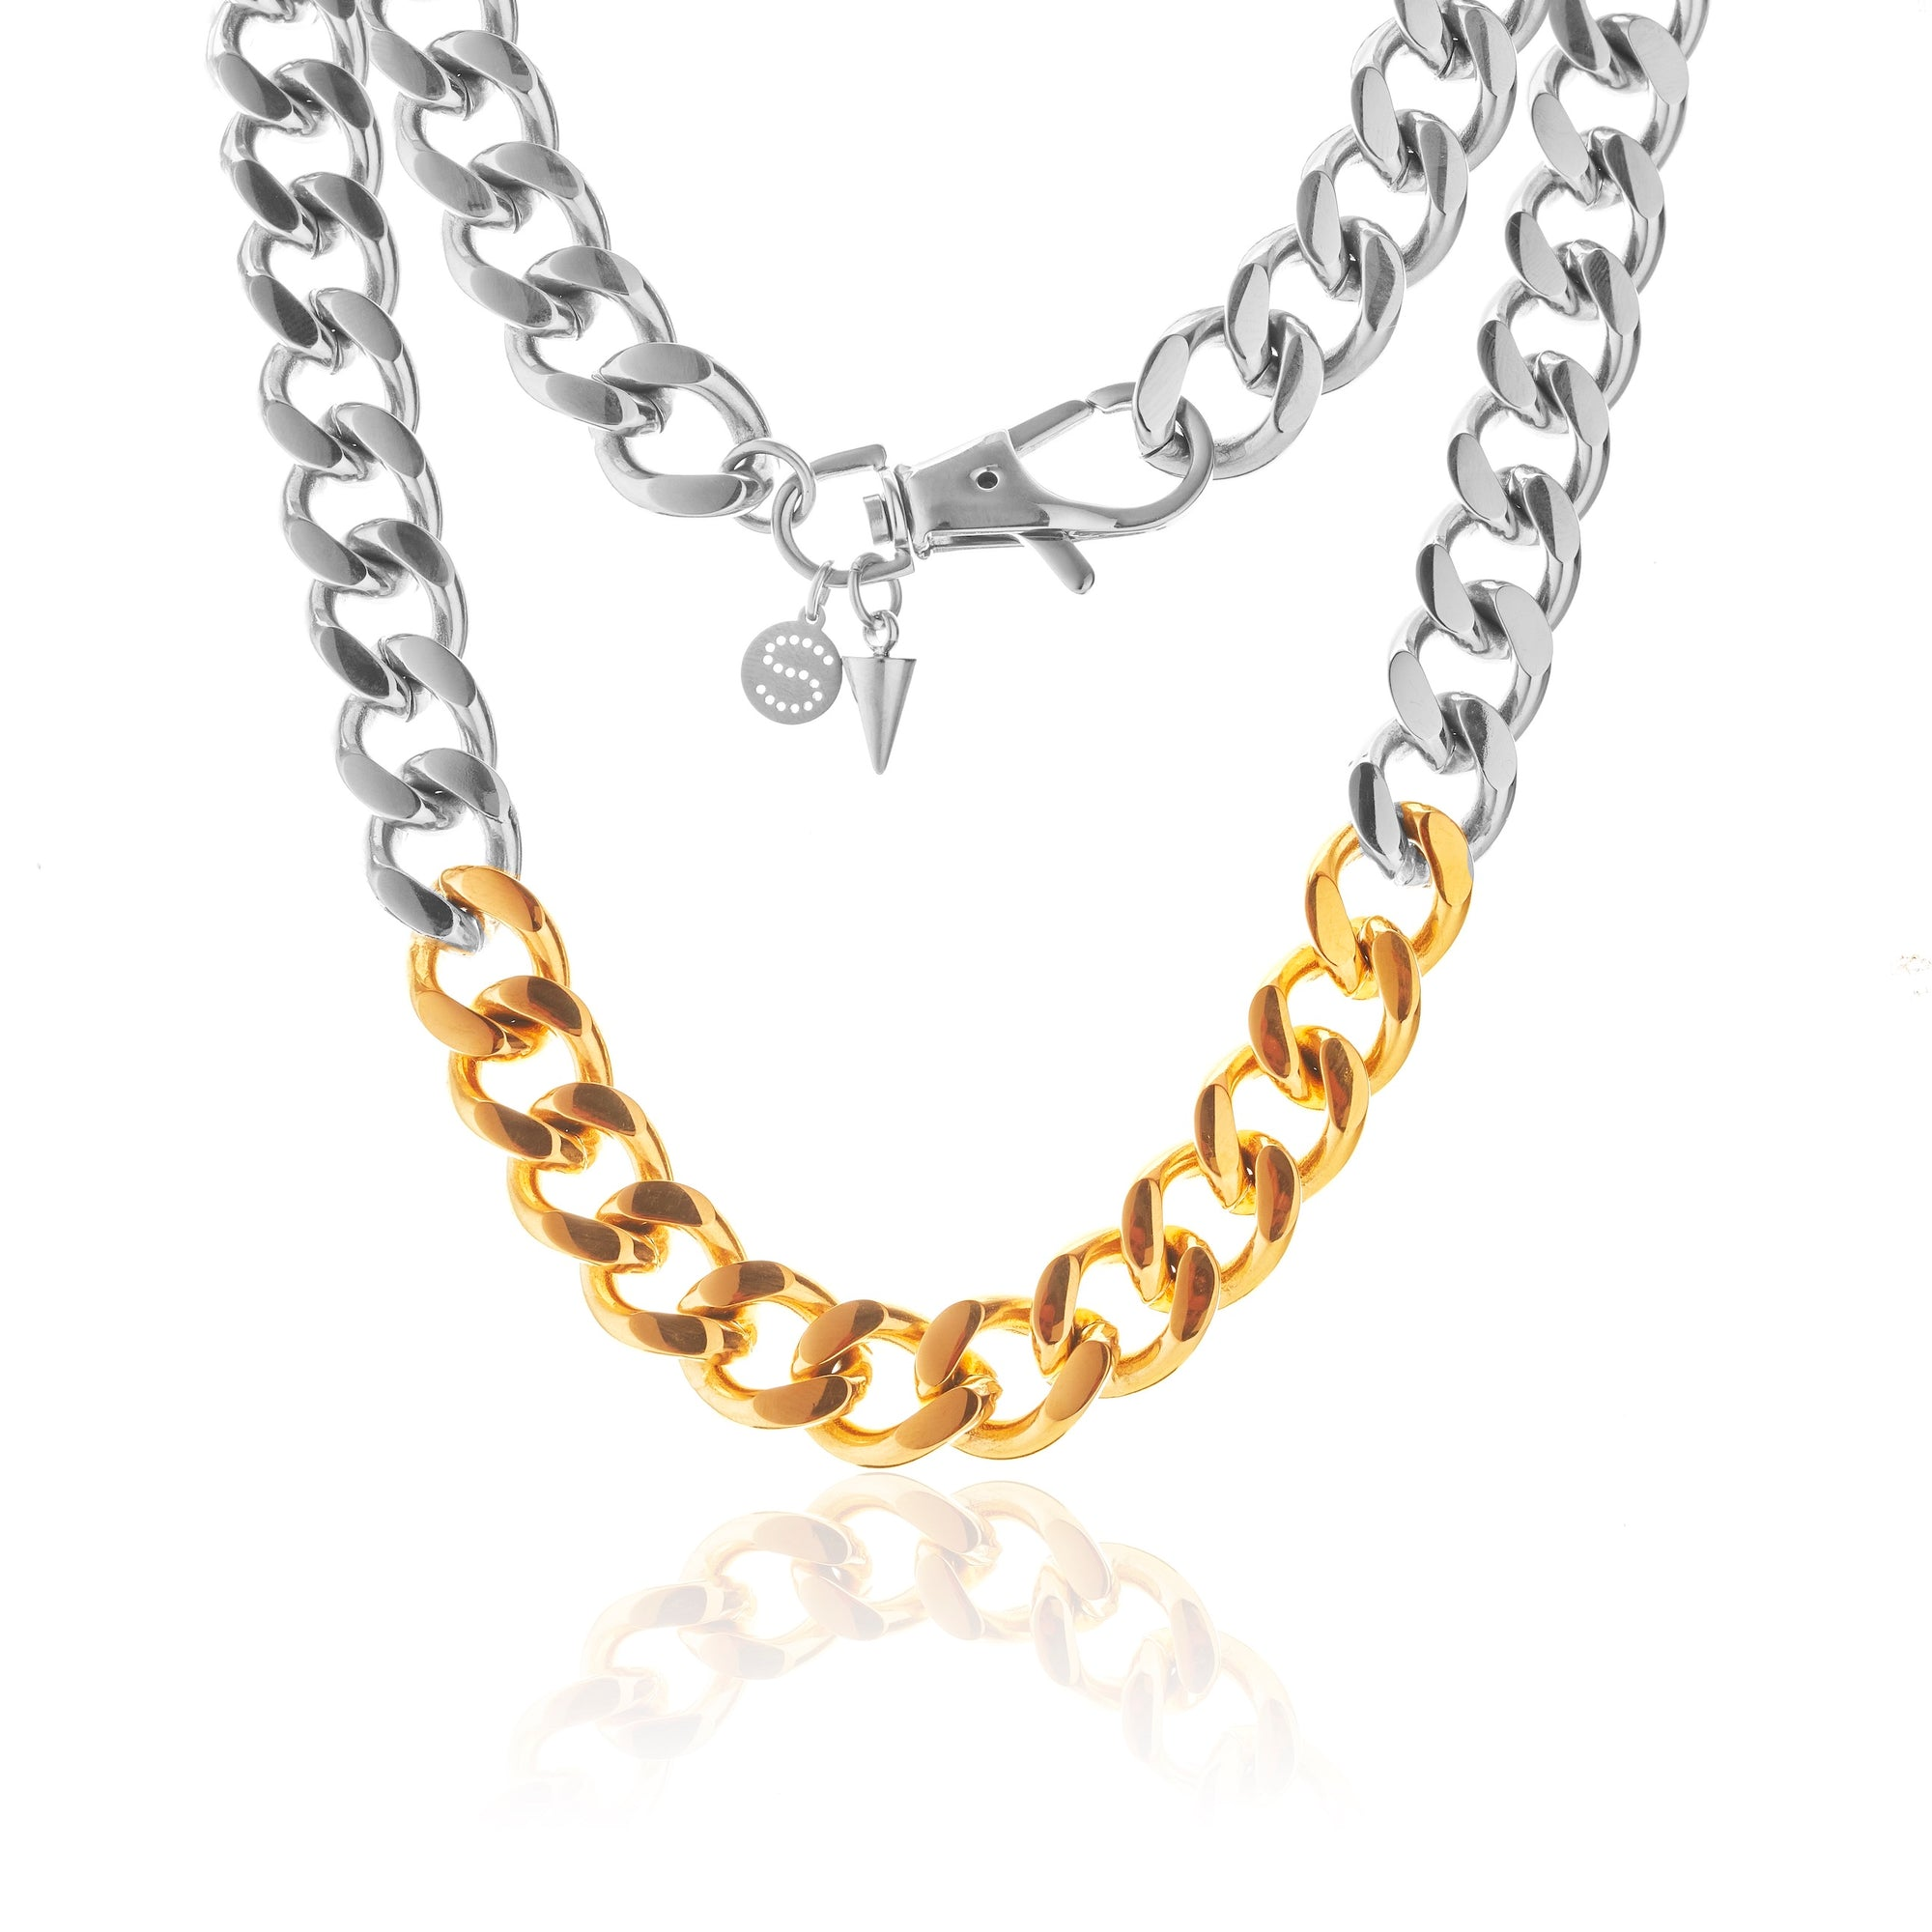 Silk & Steel x Storm Collab Two-Tone Revival curb chain Necklace